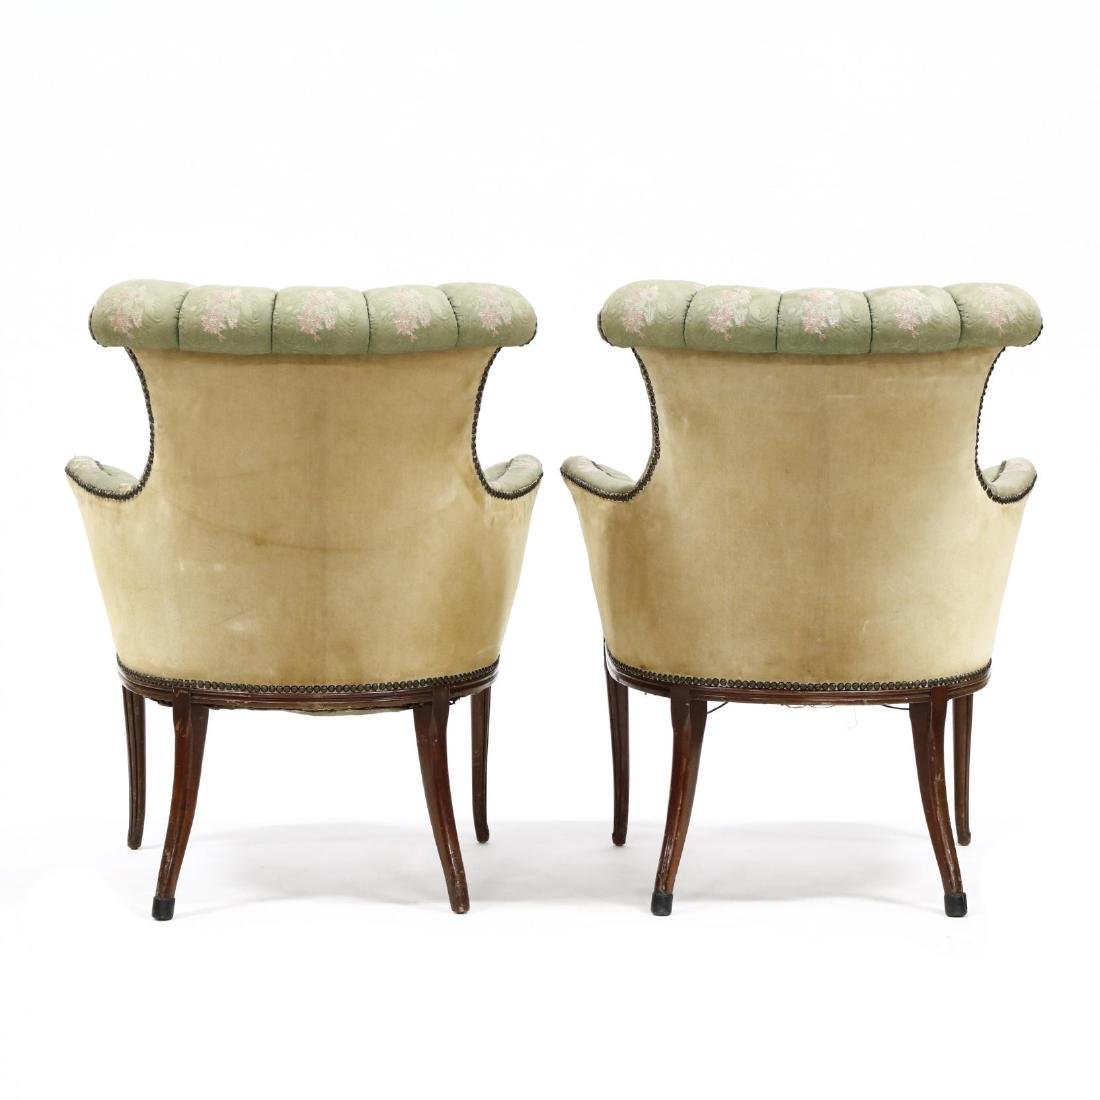 Pair of Edwardian Fireside Chairs - 3